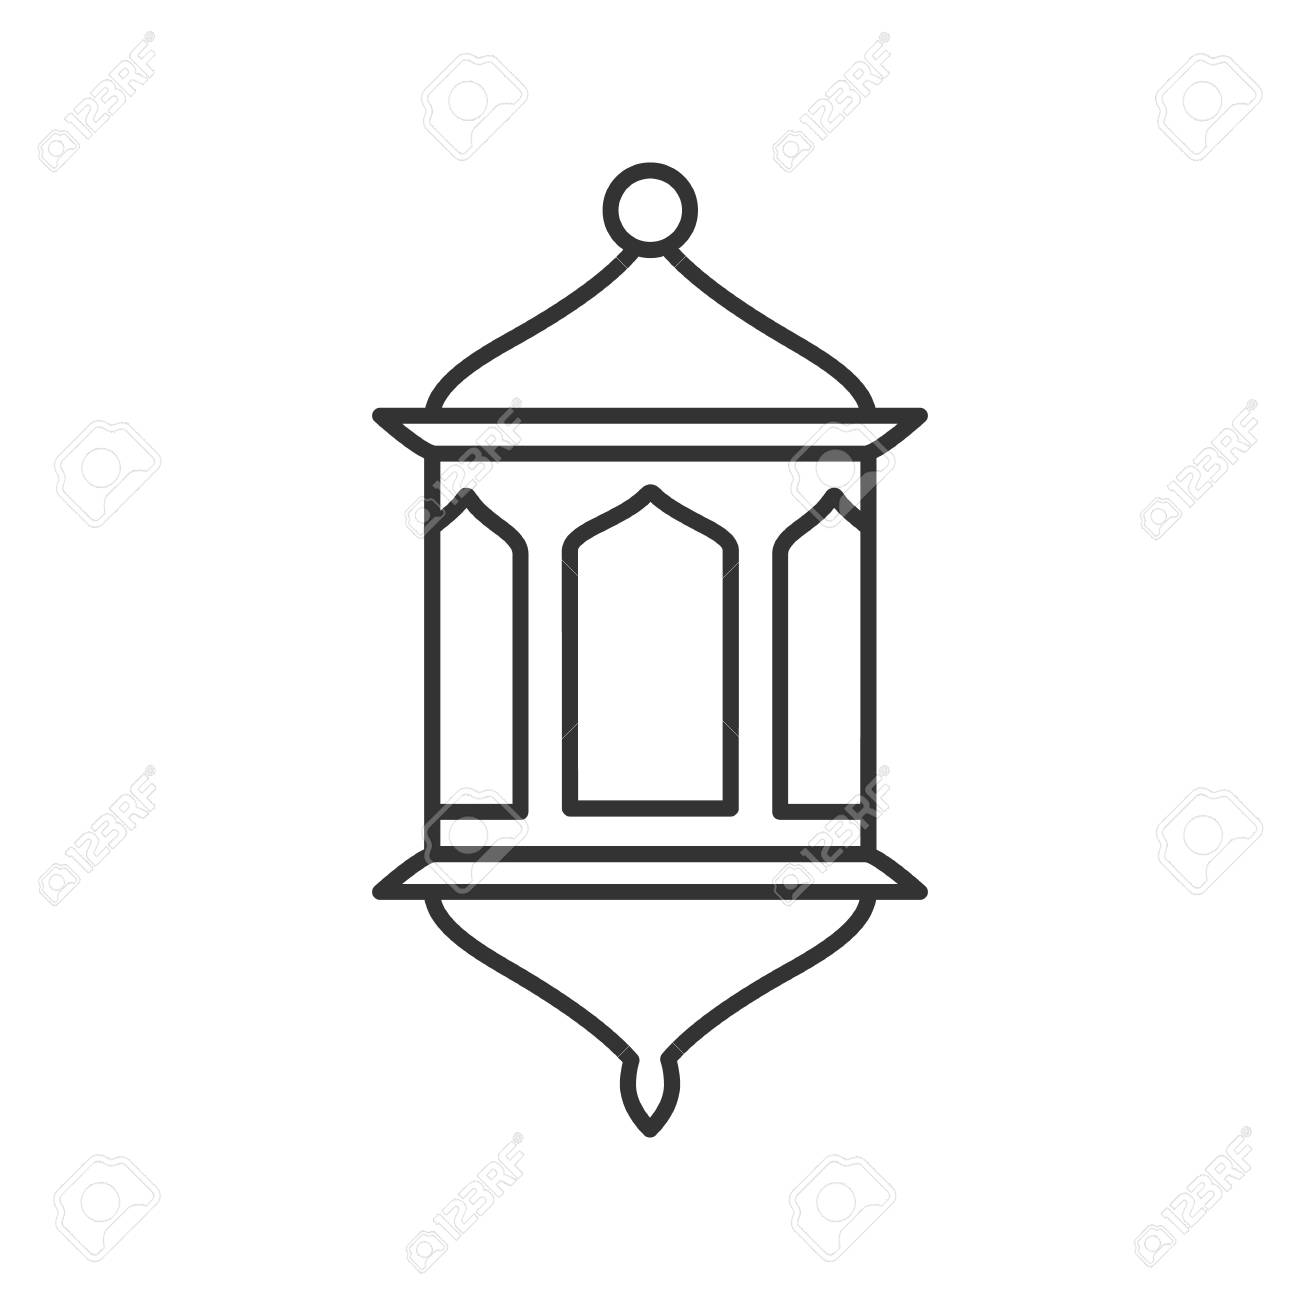 Lantern Linear Icon Thin Line Illustration Wall Lamp Contour Symbol Vector Isolated